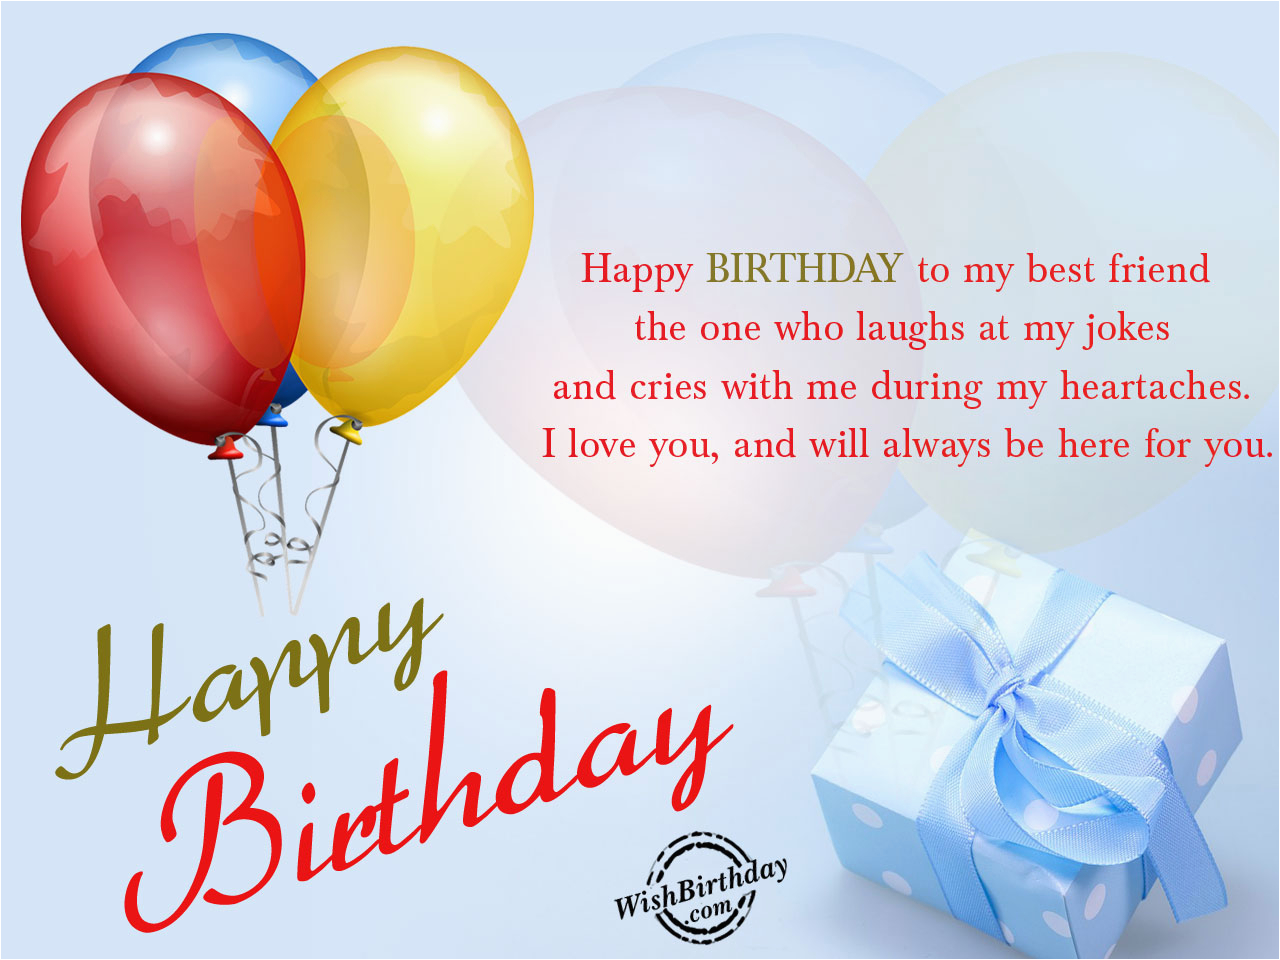 Happy Birthday Card To My Best Friend Wishes For Images Pictures